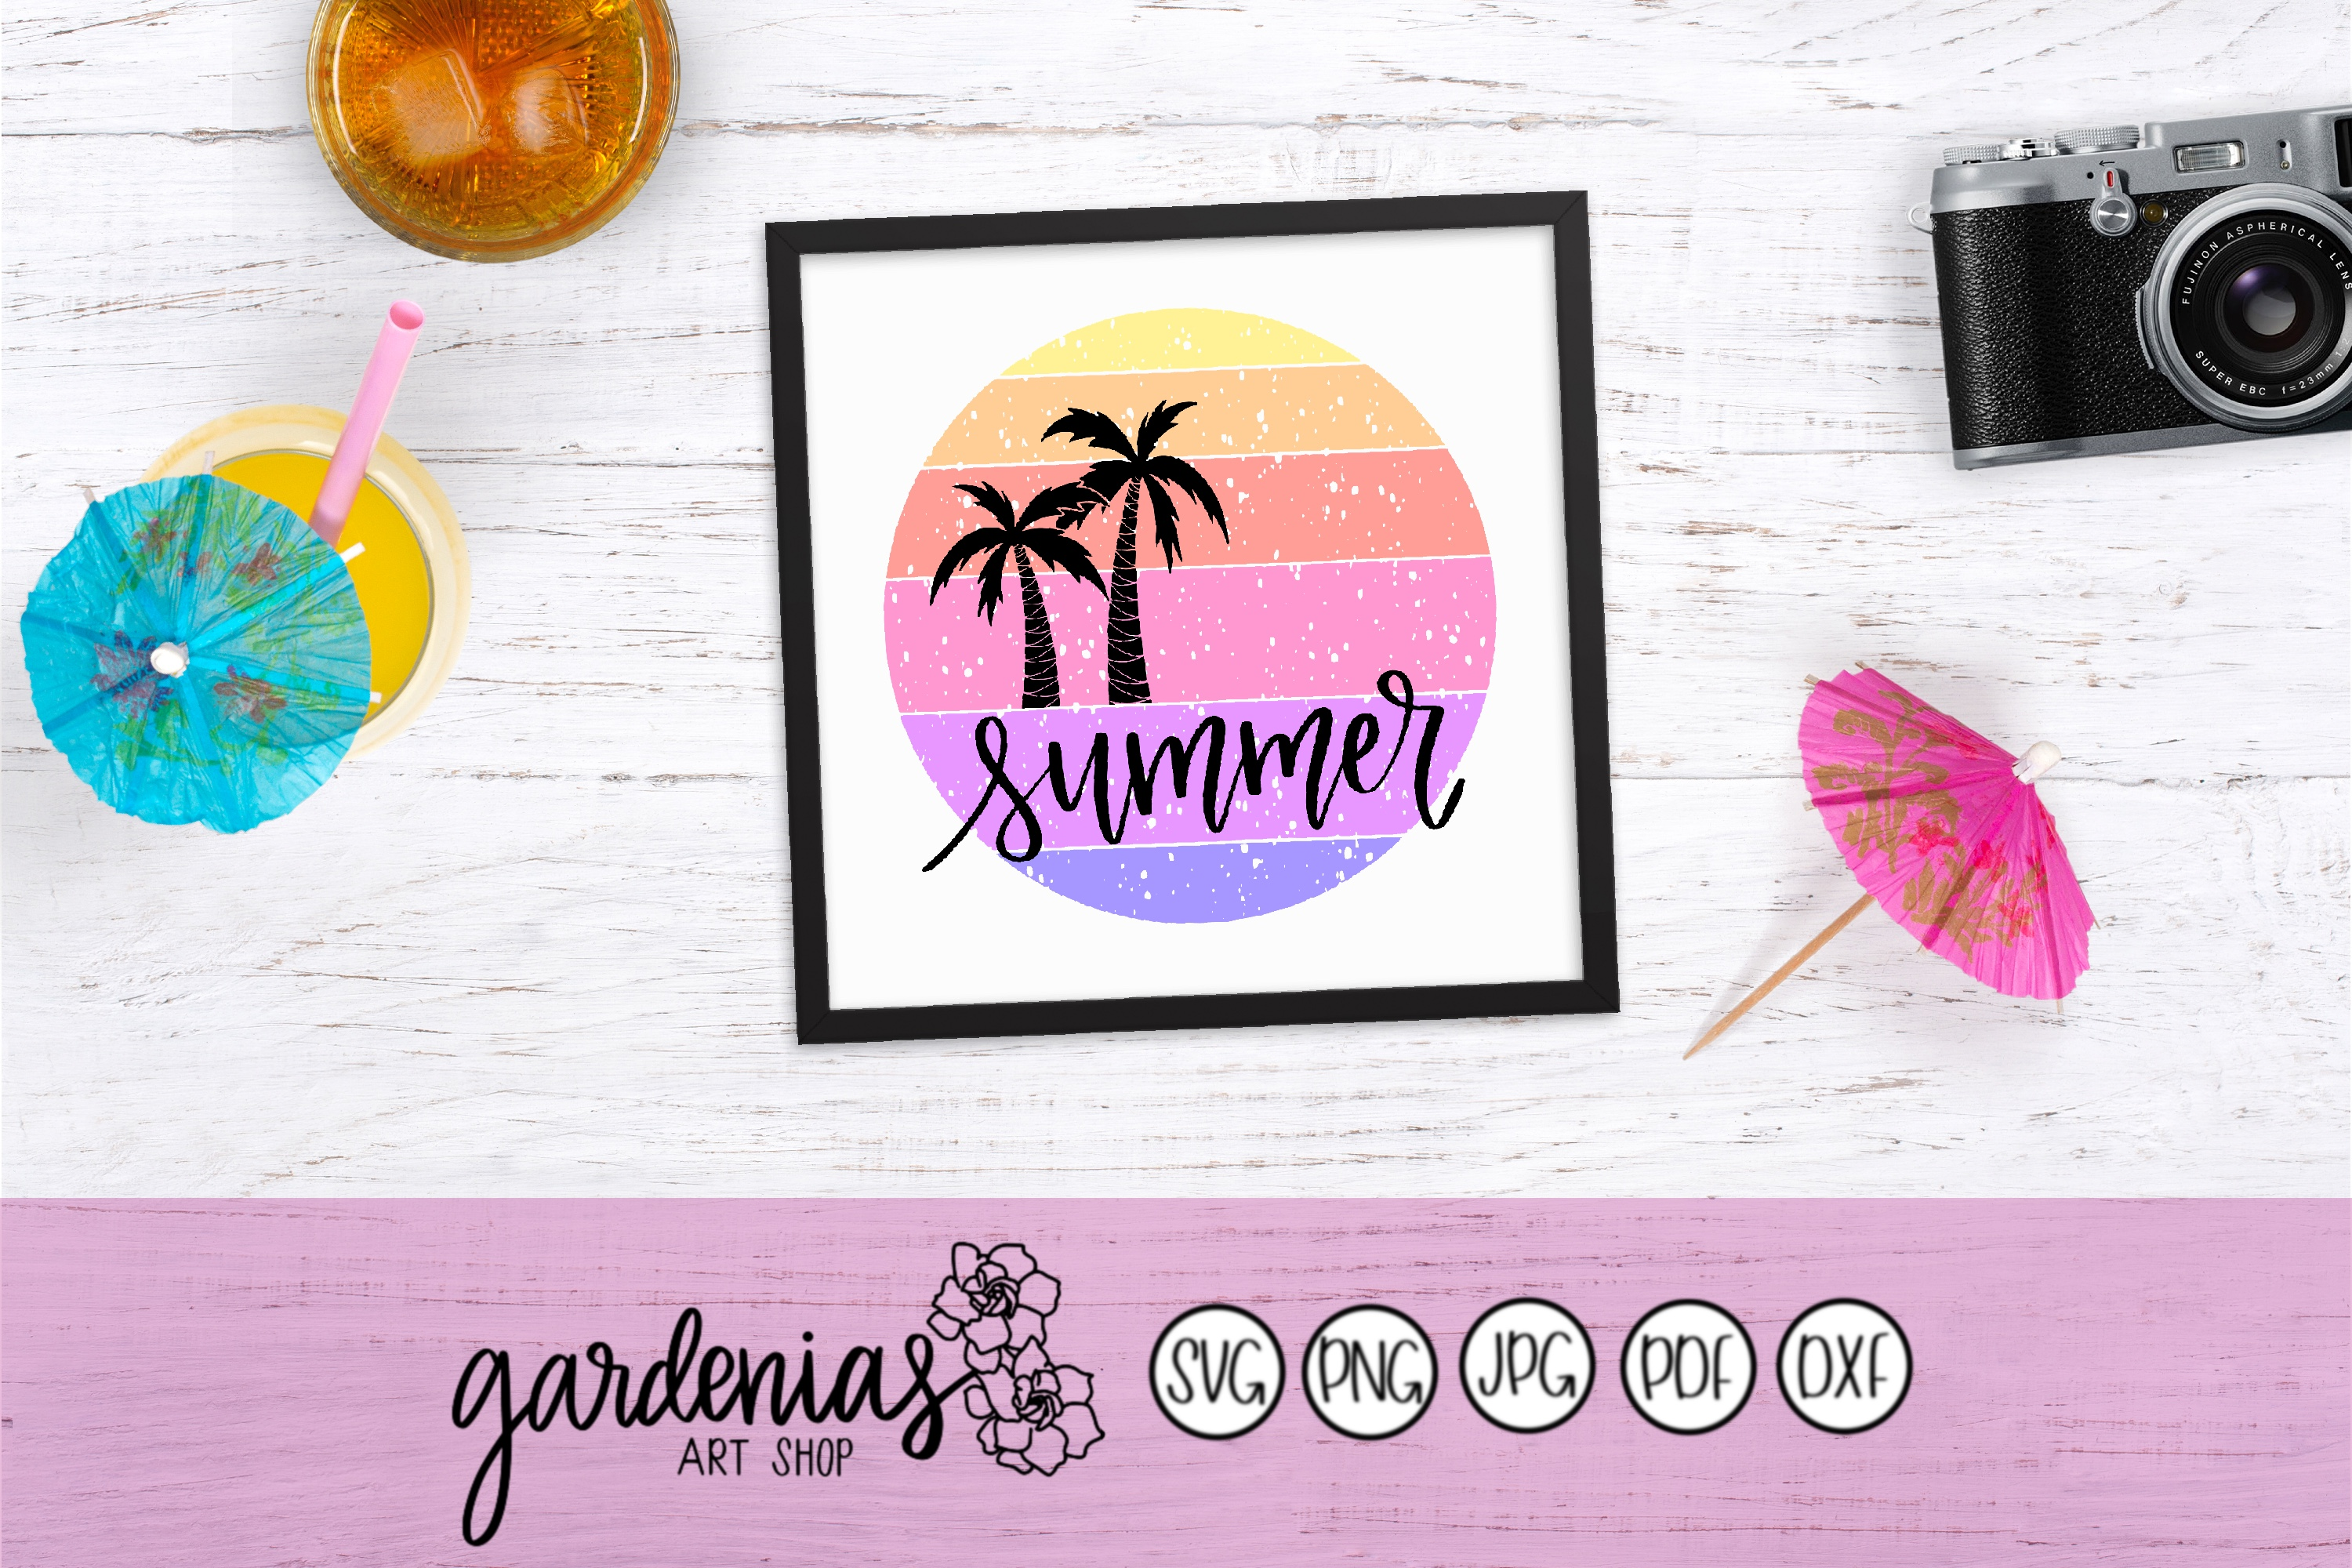 Summer SVG | Palm Trees SVG| Distressed | Circle | Textured example image 2